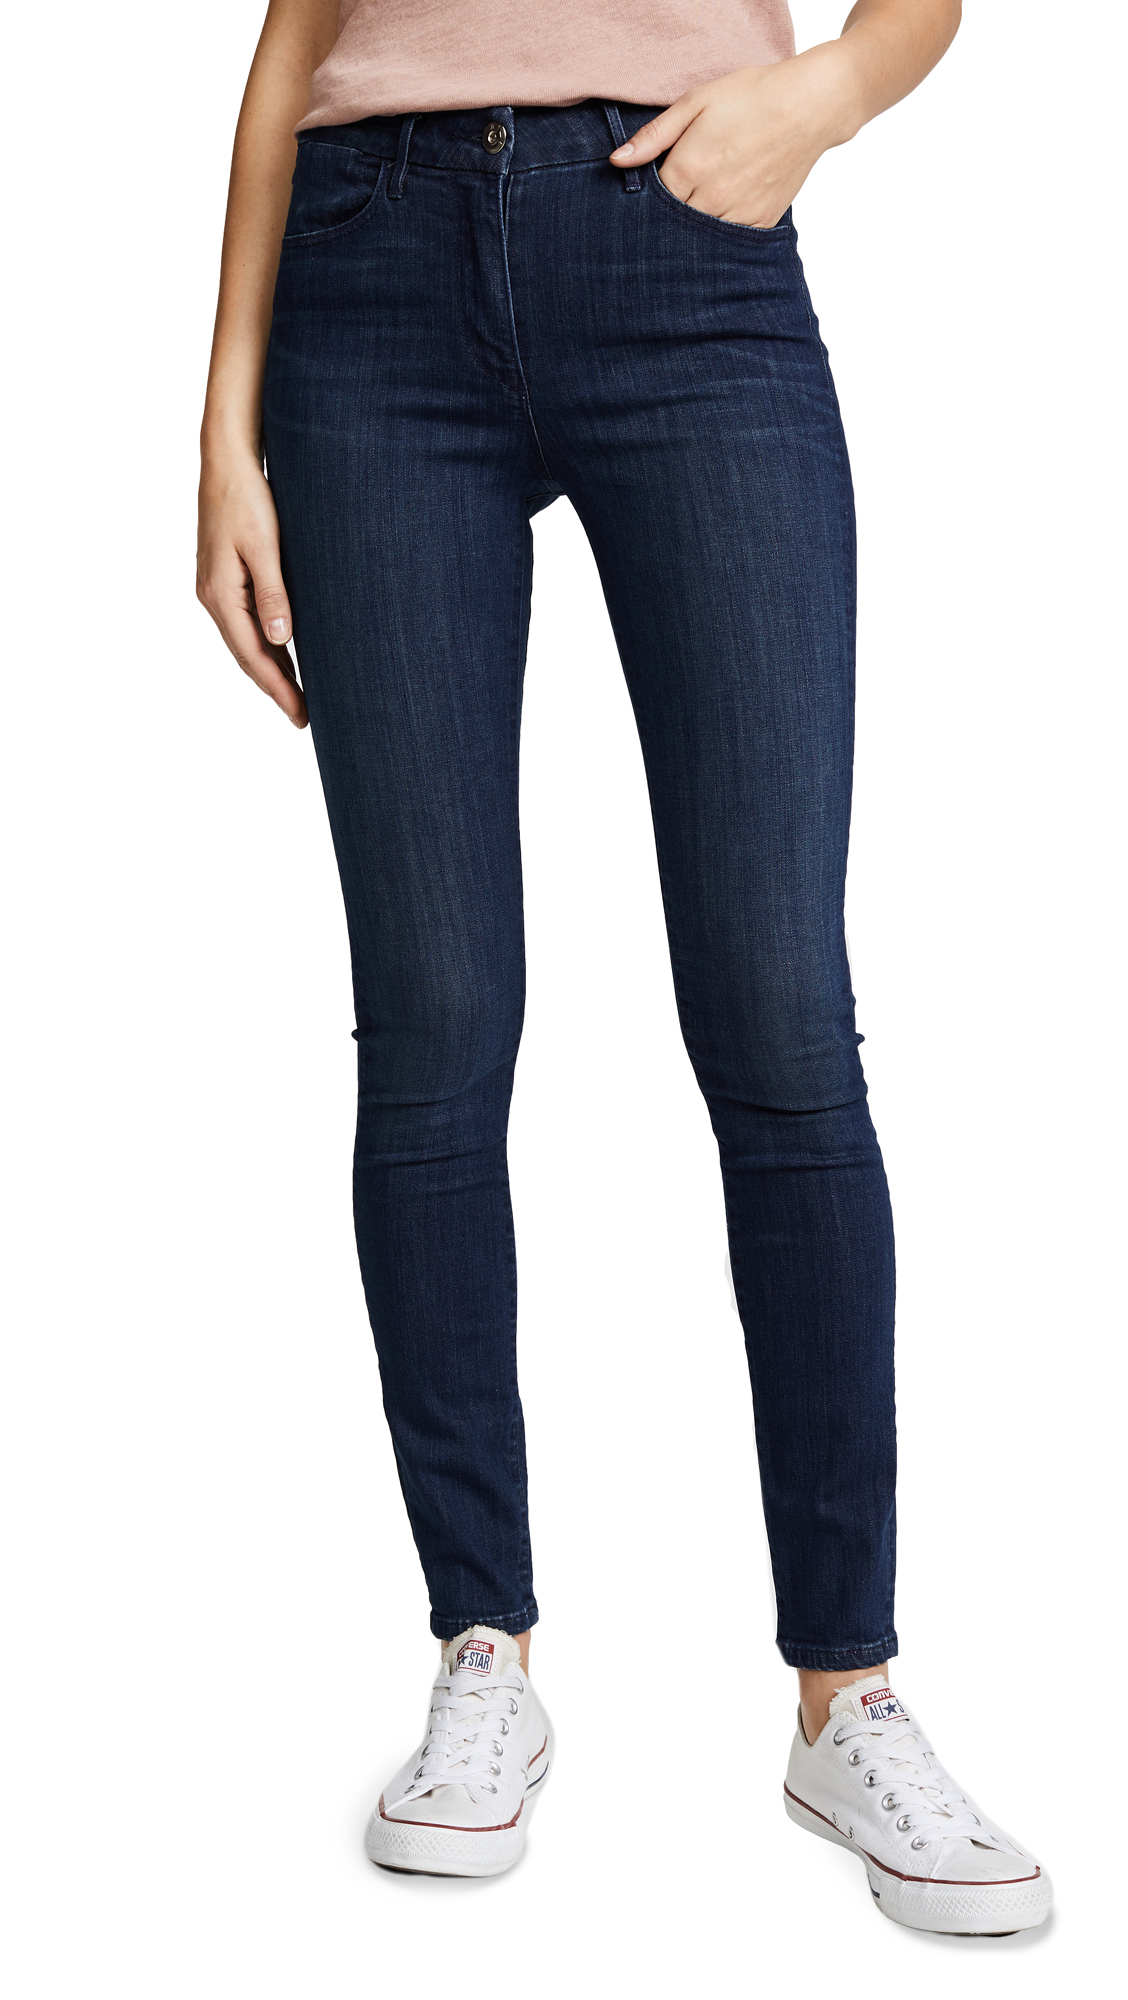 3x1 W3 Channel Seam Skinny Jeans - Wash No. 3